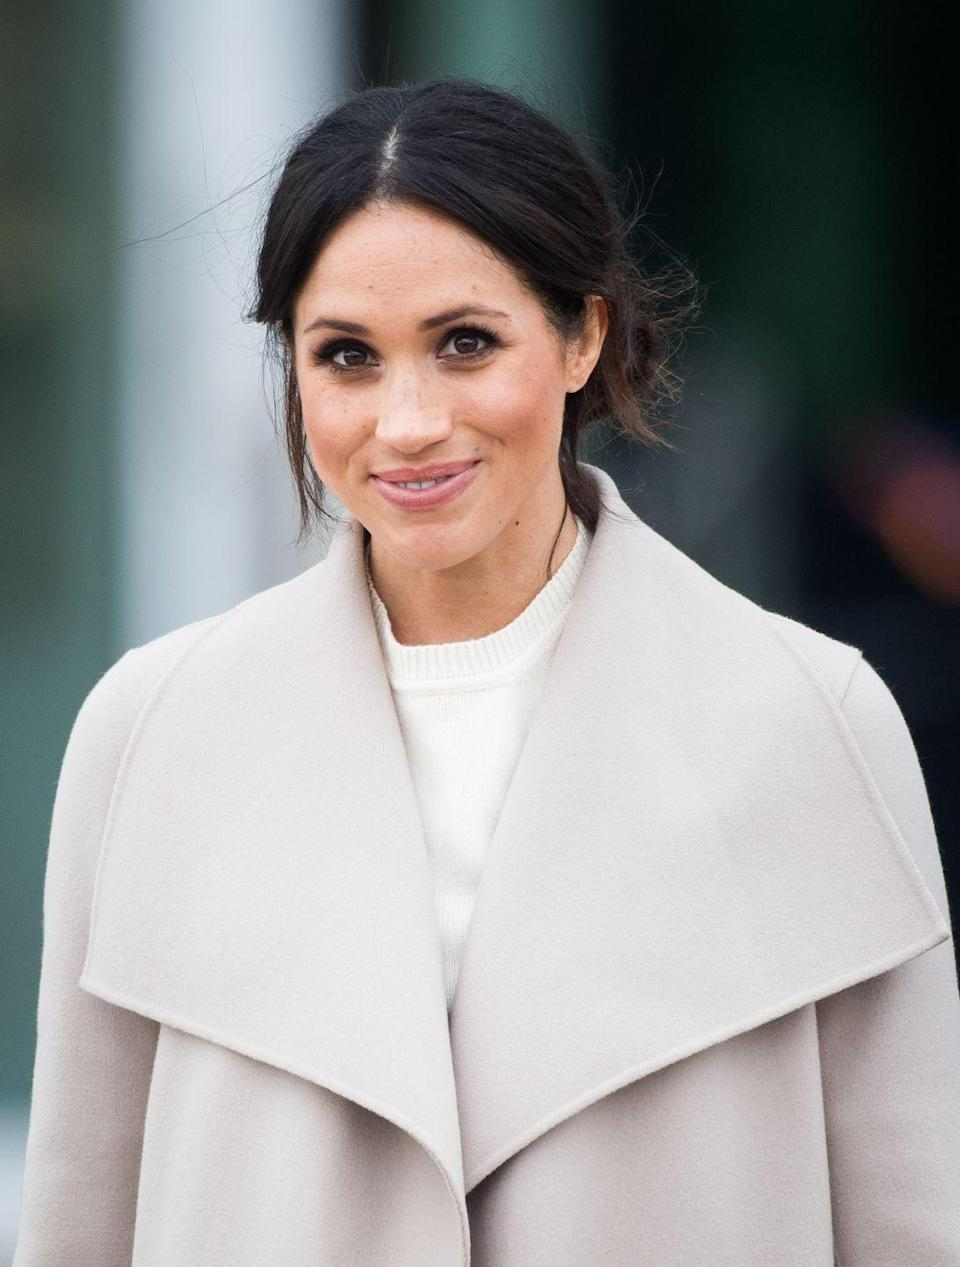 <p>When Meghan and Harry debuted their royal Instagram account, they had so many follower requests in such a short period of time, that they caused the whole app to glitch. Since then, Meghan has put her own stamp on the couple's account, highlighting various charities and posting inspirational quotes. She even posted a comment on William and Kate's Instagram post for Prince Louis's birthday, wishing him well, which some said wasn't on par with the palace's protocol. </p>